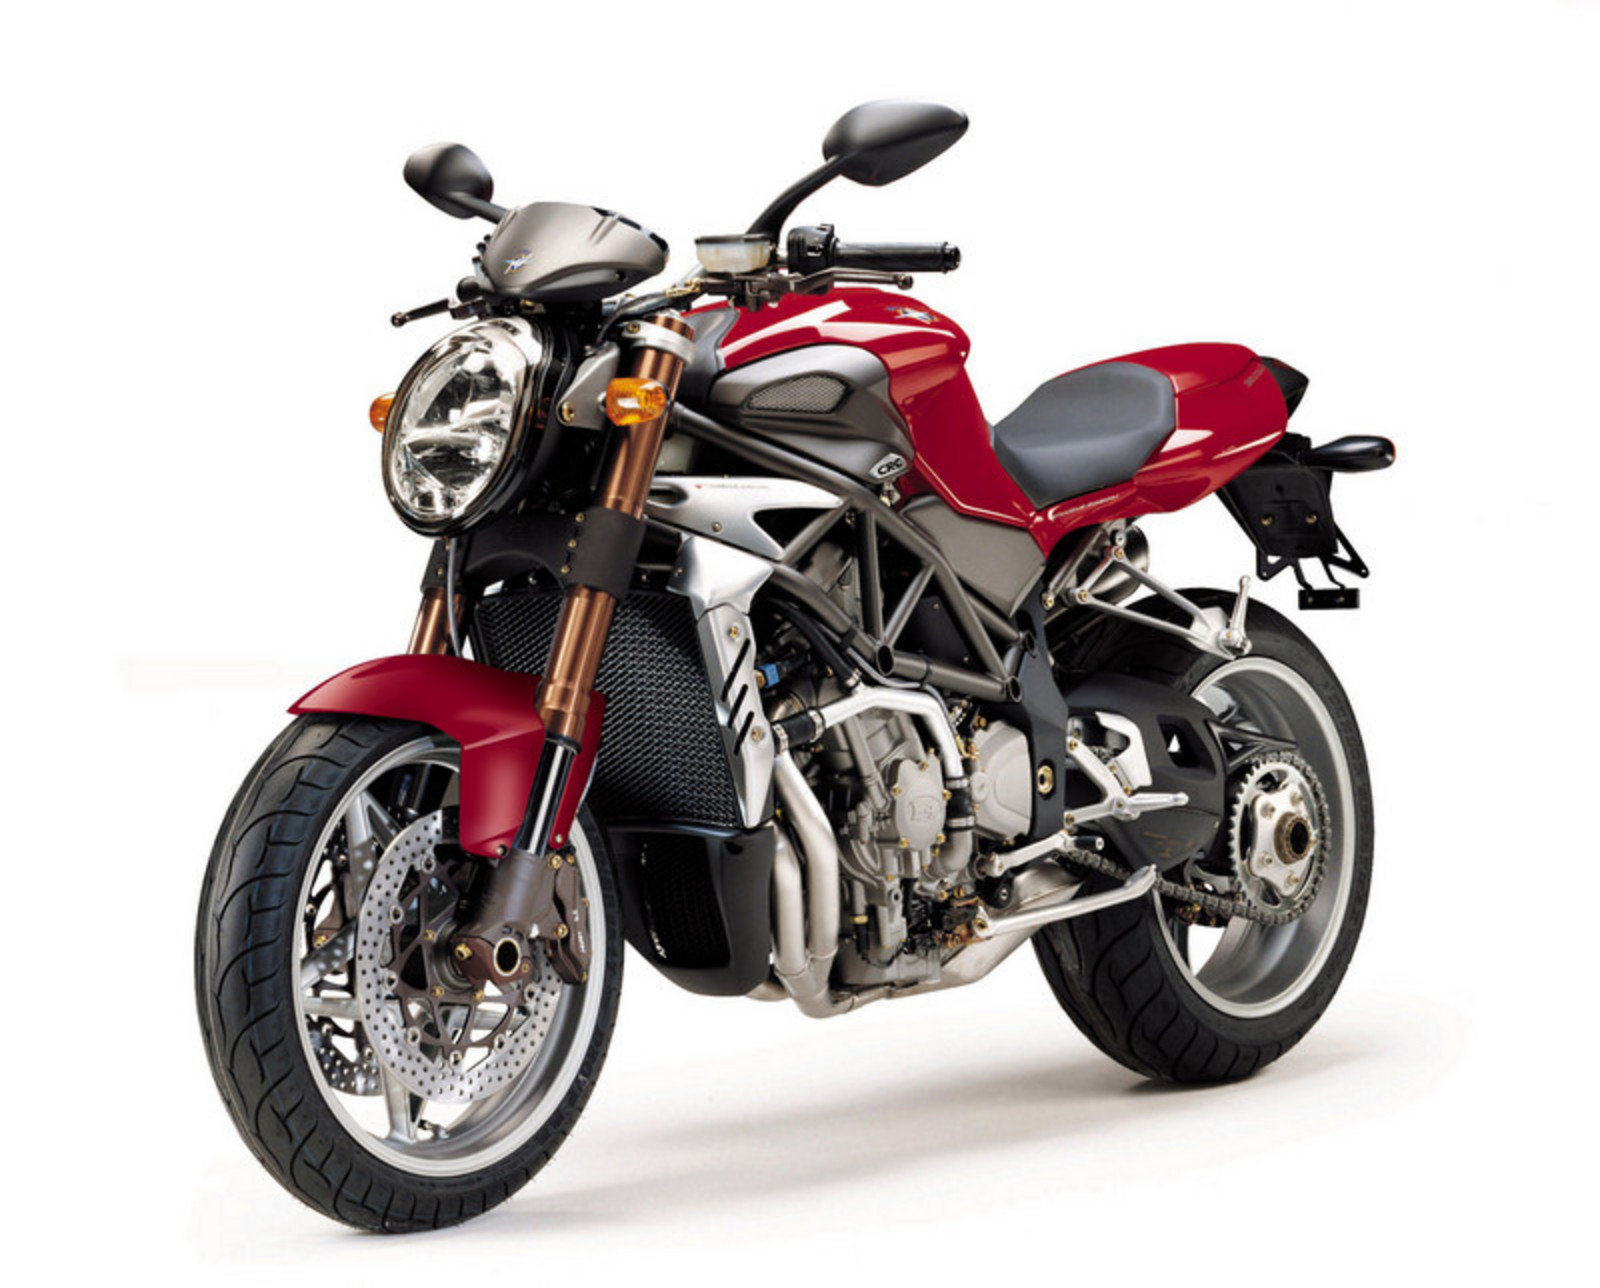 2006 mv agusta brutale 910r review top speed. Black Bedroom Furniture Sets. Home Design Ideas